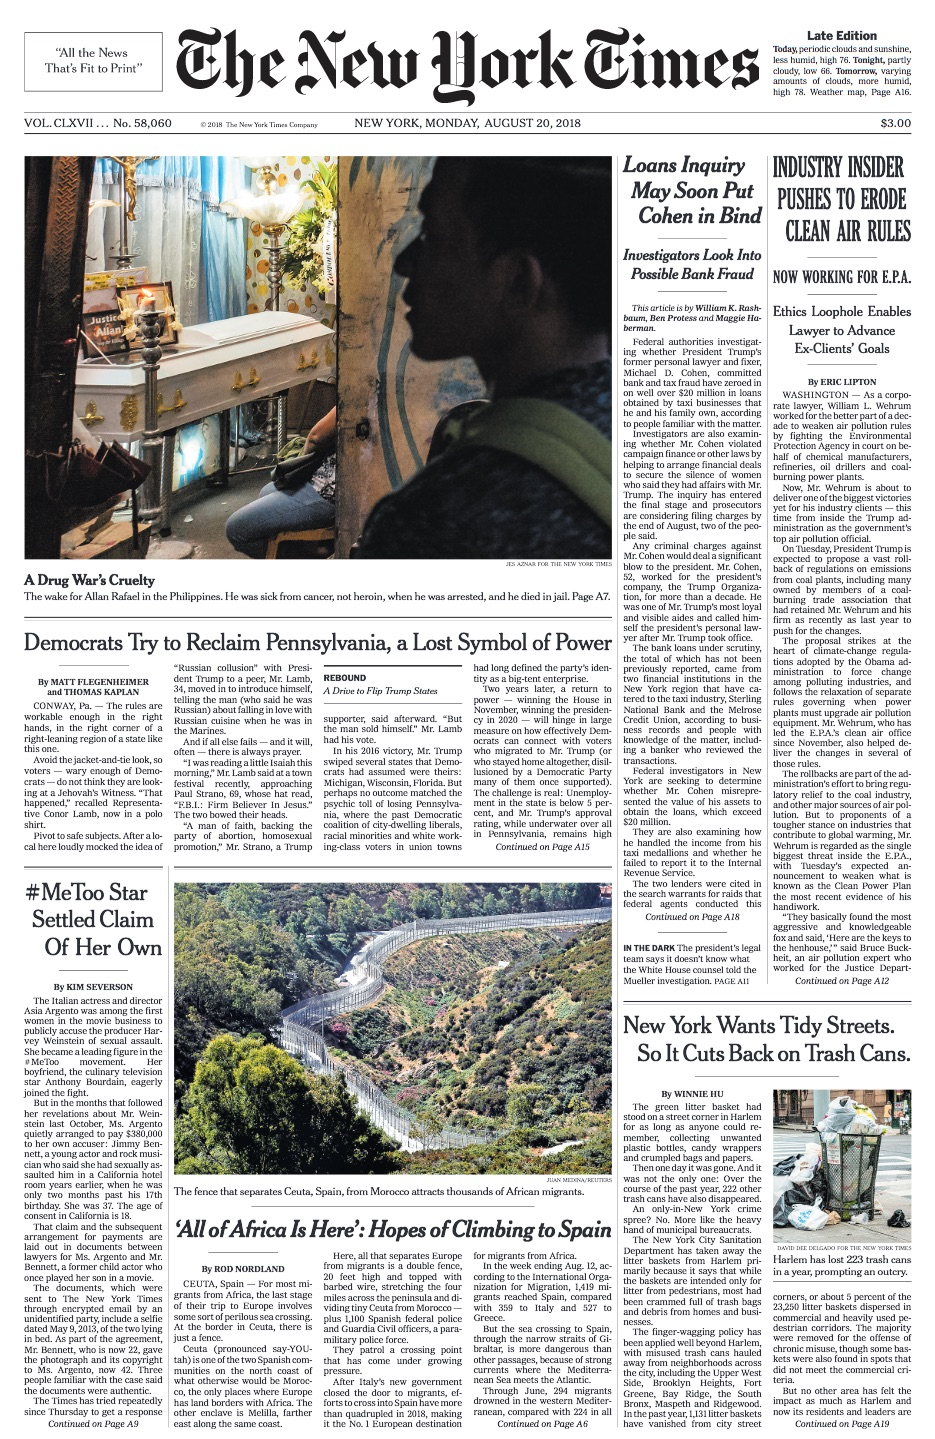 NYT_FrontPage_082018.jpg